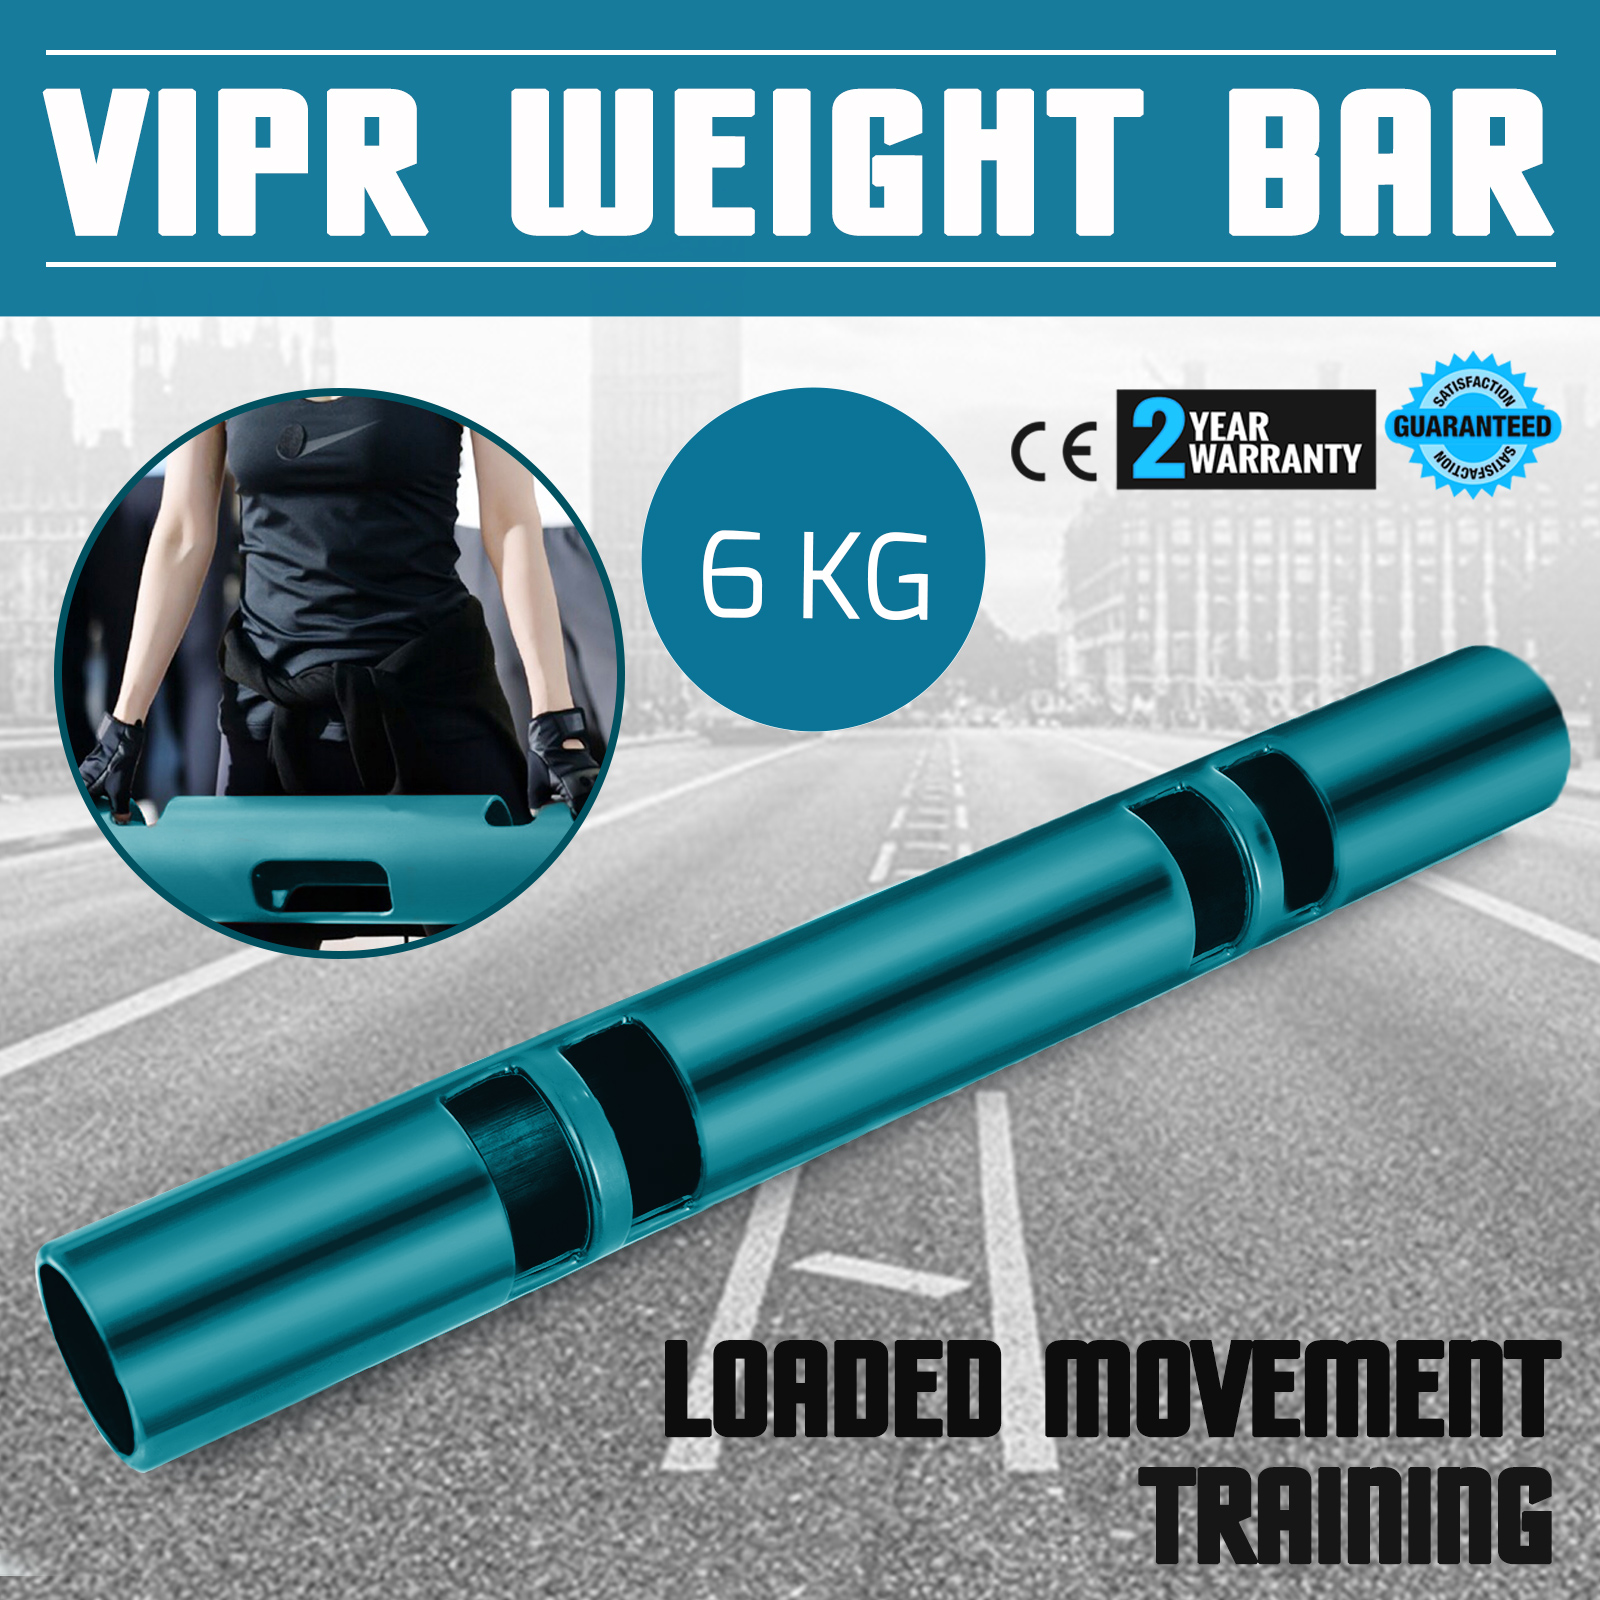 Vipr-Fitpro-Fitness-Tube-Loaded-Movement-Training-weightlifting-4-6-8-10-12-Kg thumbnail 25